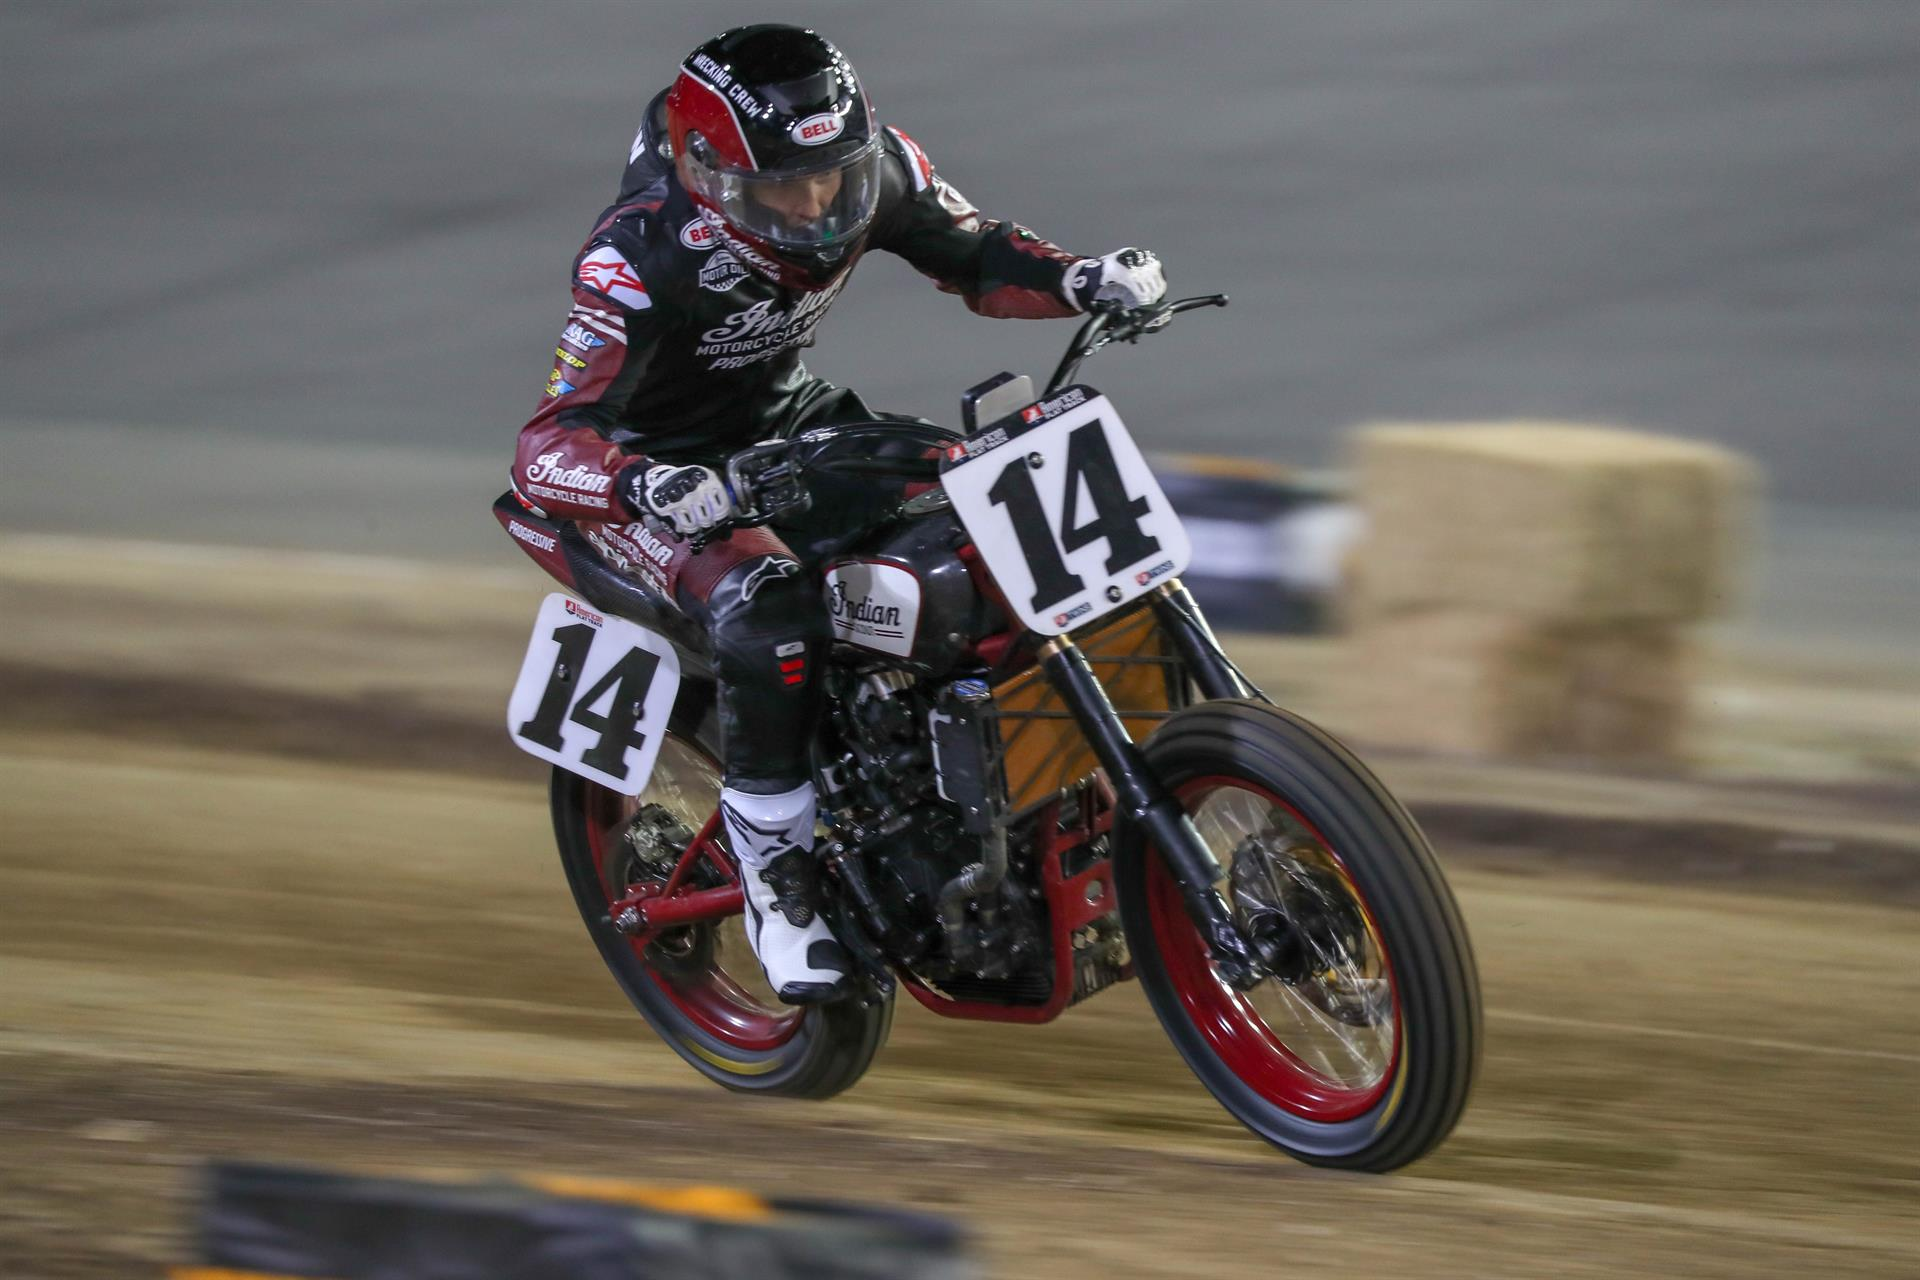 Briar Bauman and his Indian Motorcycle/Progressive Insurance FTR750 on the way to winning at Daytona. [Photo Credit: Scott Hunter/American Flat Track]